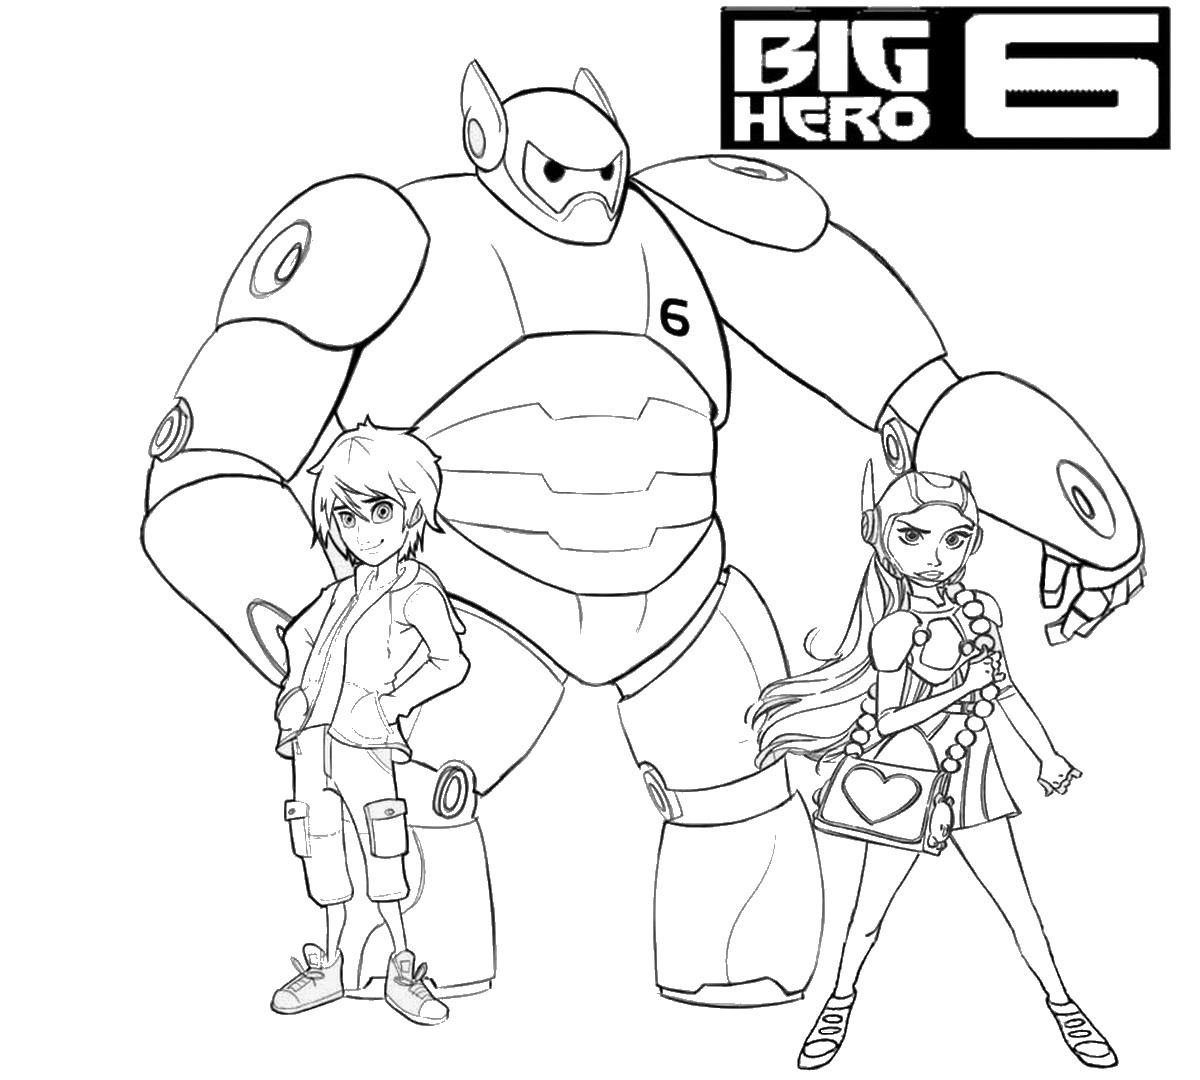 Big Hero 6 Coloring Pages Birthday Printable Big 6 Coloring Pages